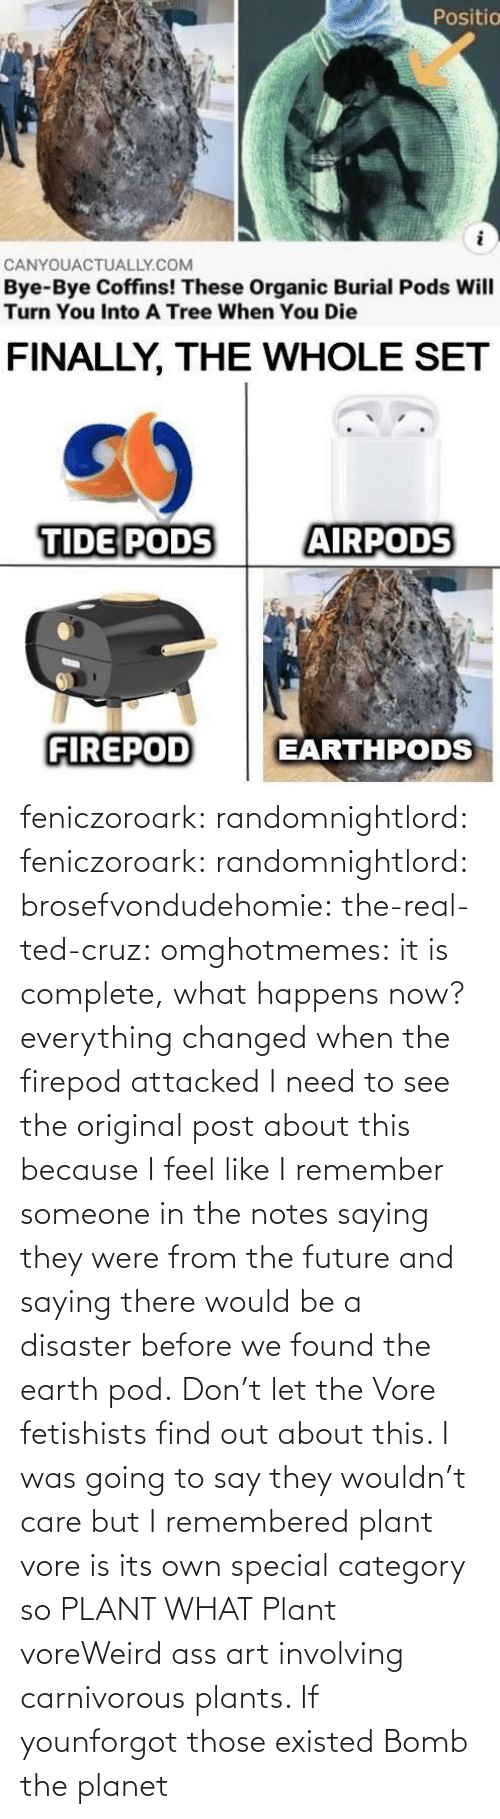 notes: feniczoroark:  randomnightlord:  feniczoroark:  randomnightlord:  brosefvondudehomie: the-real-ted-cruz:  omghotmemes: it is complete, what happens now? everything changed when the firepod attacked    I need to see the original post about this because I feel like I remember someone in the notes saying they were from the future and saying there would be a disaster before we found the earth pod.    Don't let the Vore fetishists find out about this.    I was going to say they wouldn't care but I remembered plant vore is its own special category so   PLANT WHAT   Plant voreWeird ass art involving carnivorous plants. If younforgot those existed   Bomb the planet